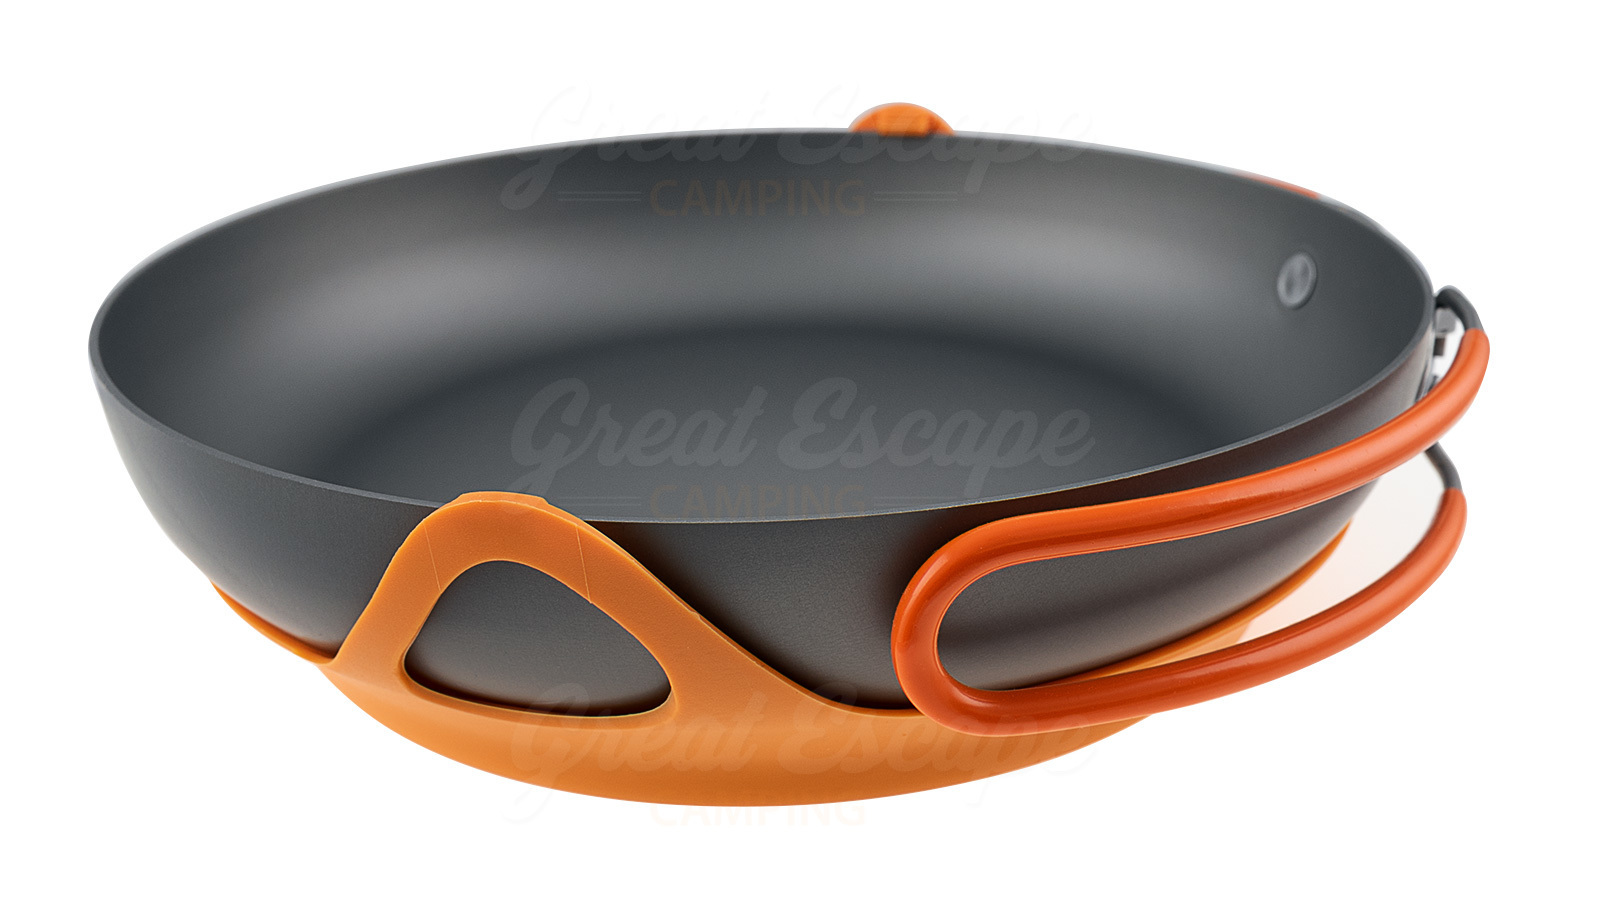 Jetboil Fluxring Fry Pan Frypan For Mightymo Zip Flash